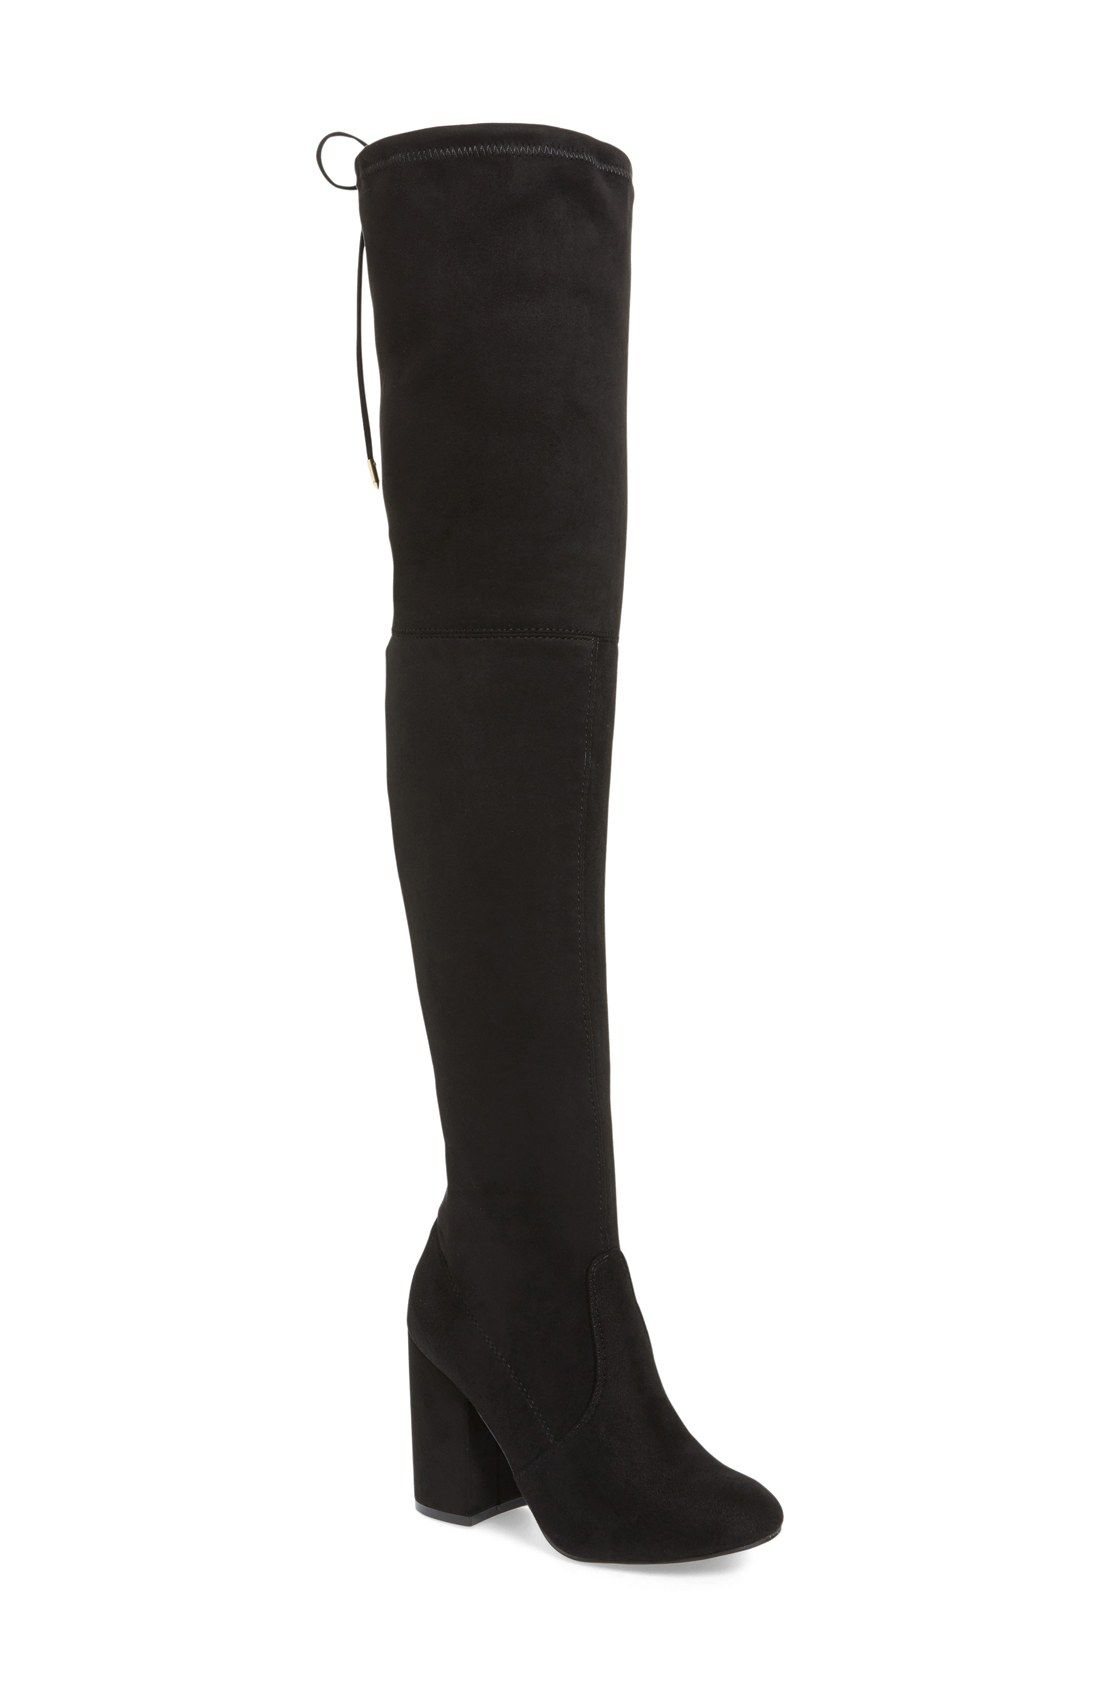 52e809912e8 NORRI OVER THE KNEE BOOT (WOMEN)    these black